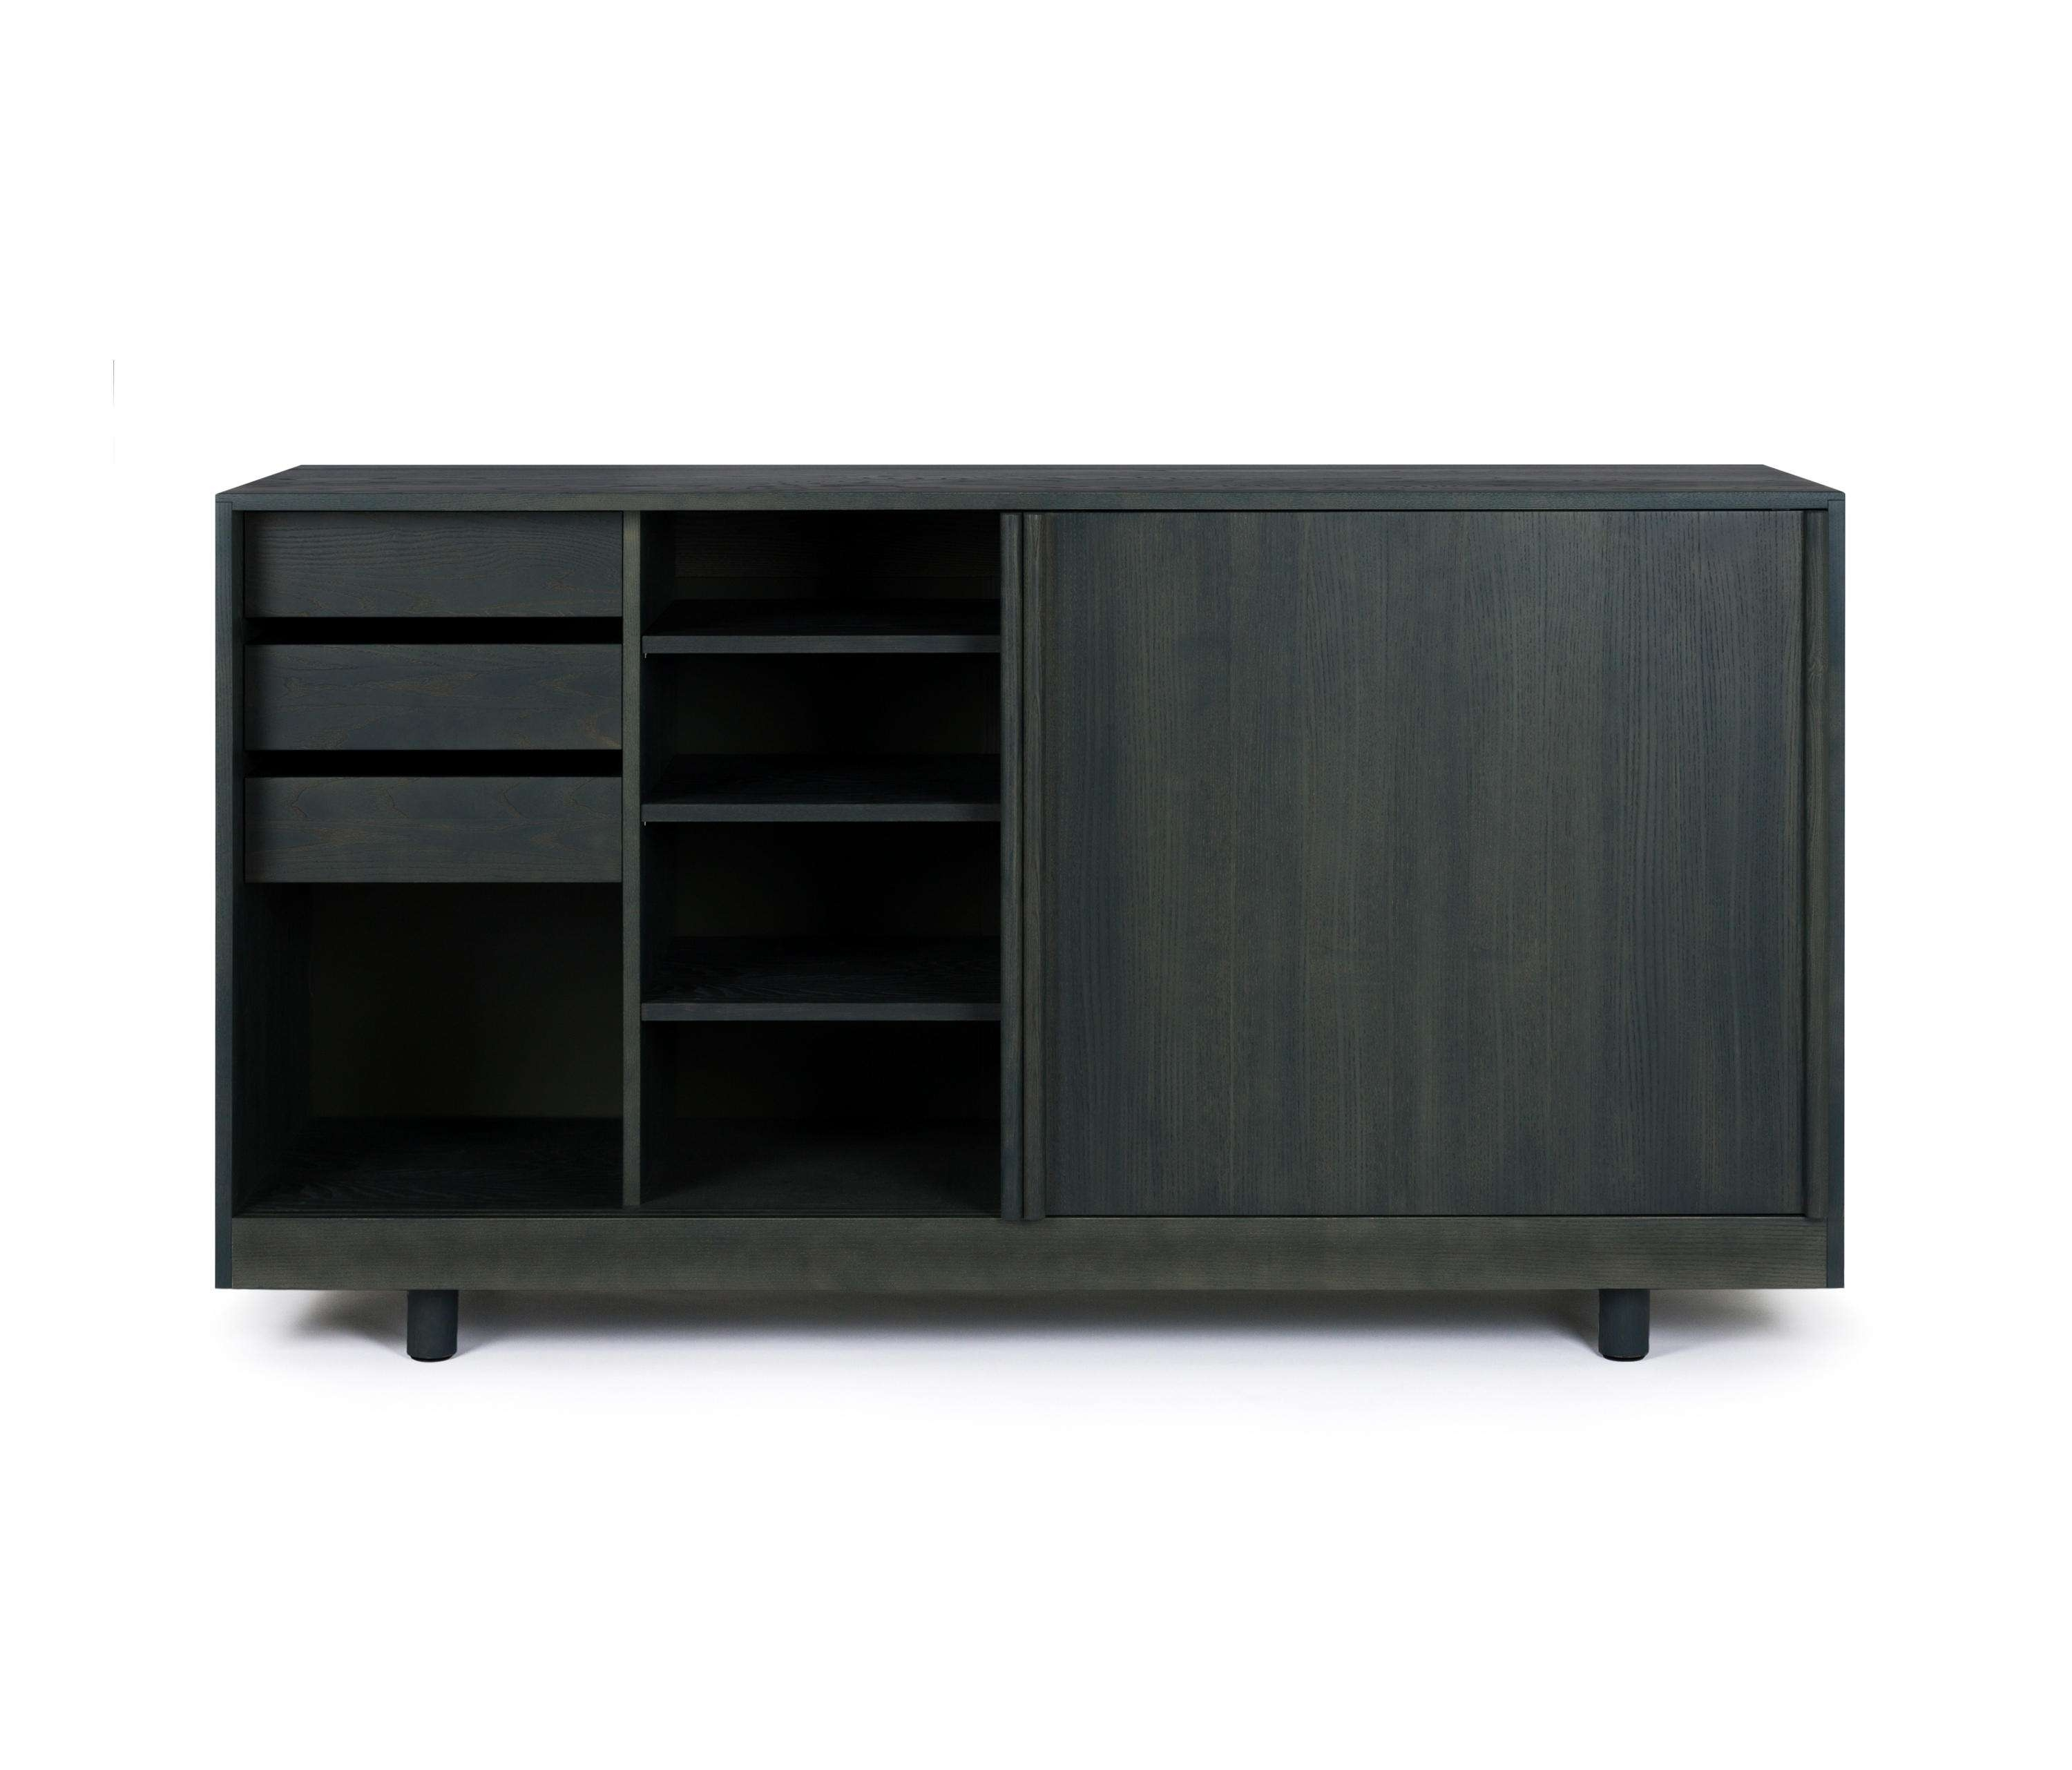 Sideboard With Sliding Doors Forest Green – Sideboards From Throughout Green Sideboards (View 17 of 20)